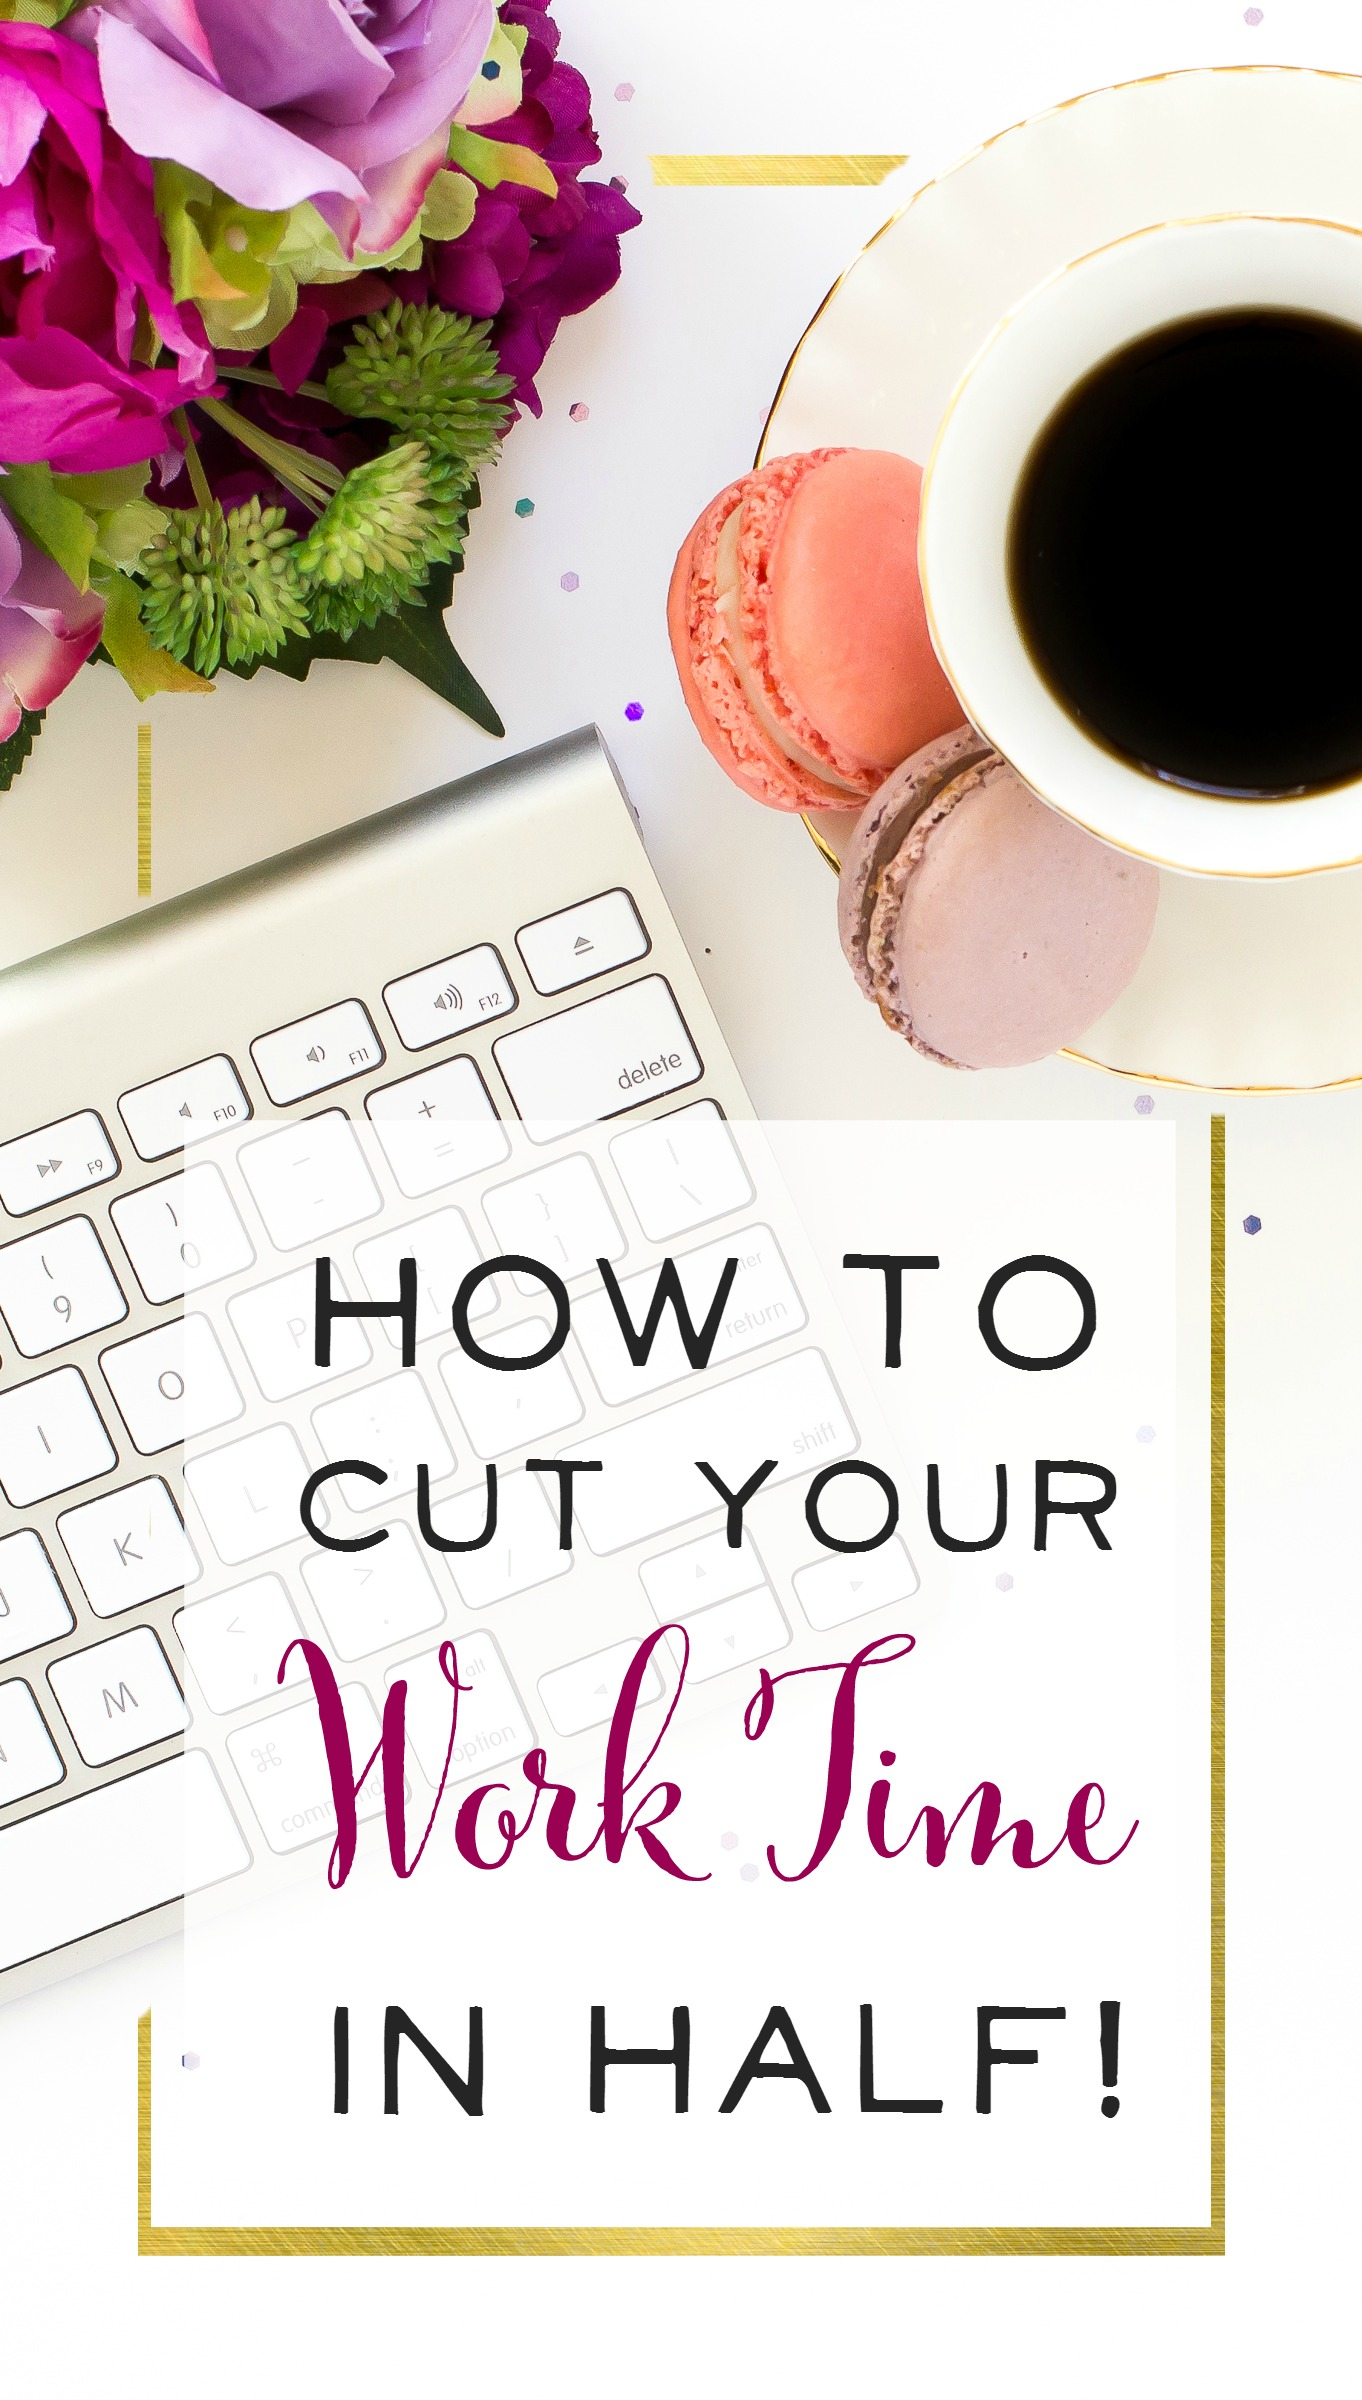 LOVE this post! Finally some realistic time management advice, and I can see how if I practiced this for a month, I could drastically cut down on my work time.   How to Cut your Work Time in Half! Realistic Productivity Secrets for Mamapreneurs